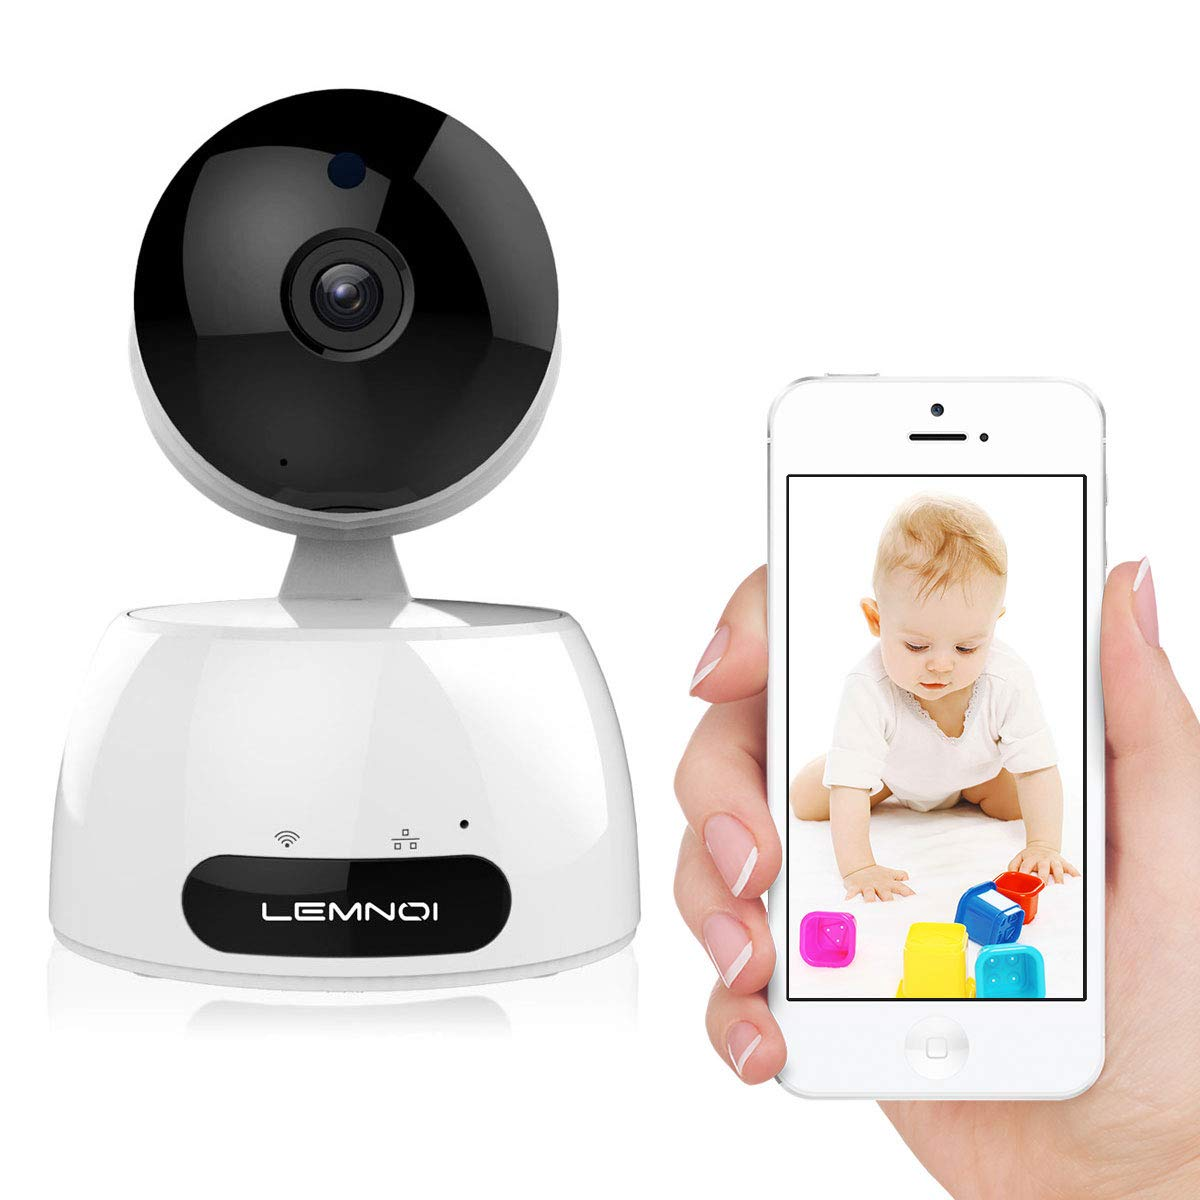 720P Wireless Security Camera, Lemnoi WiFi IP Camera Baby/Elderly/Pet Monitor with Pan/Tilt/Zoom, Night Vision, Two Way Audio with iOS/Android/Windows Pad PC